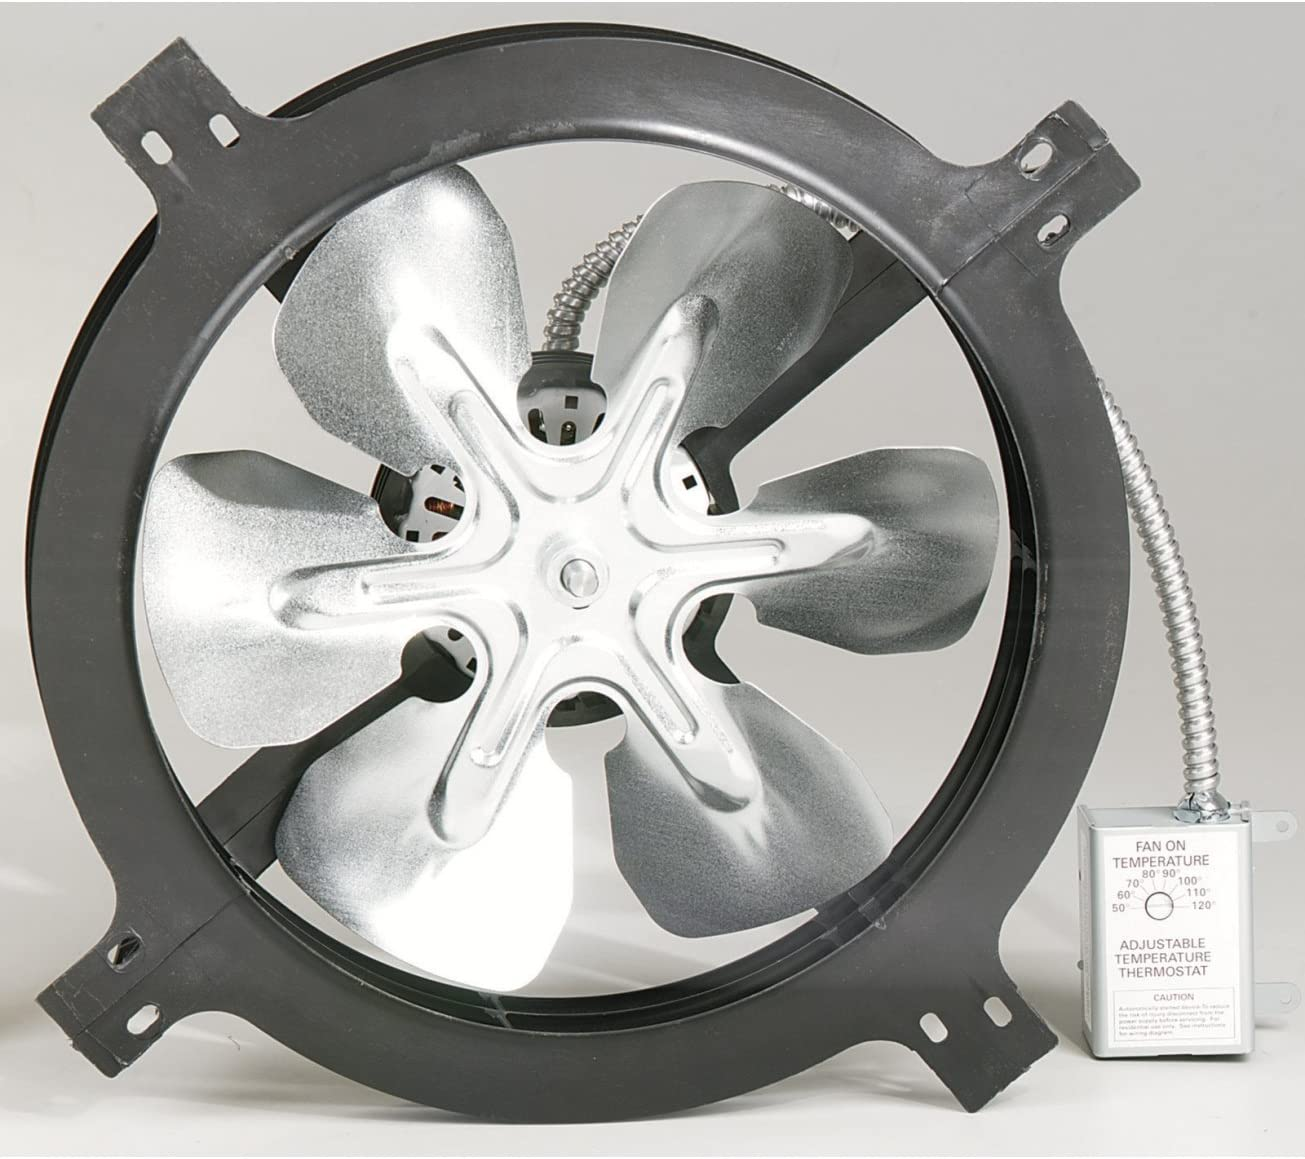 Replacement Motor Whole House Fan Direct Drive 24 Inches Ventilation Accessories